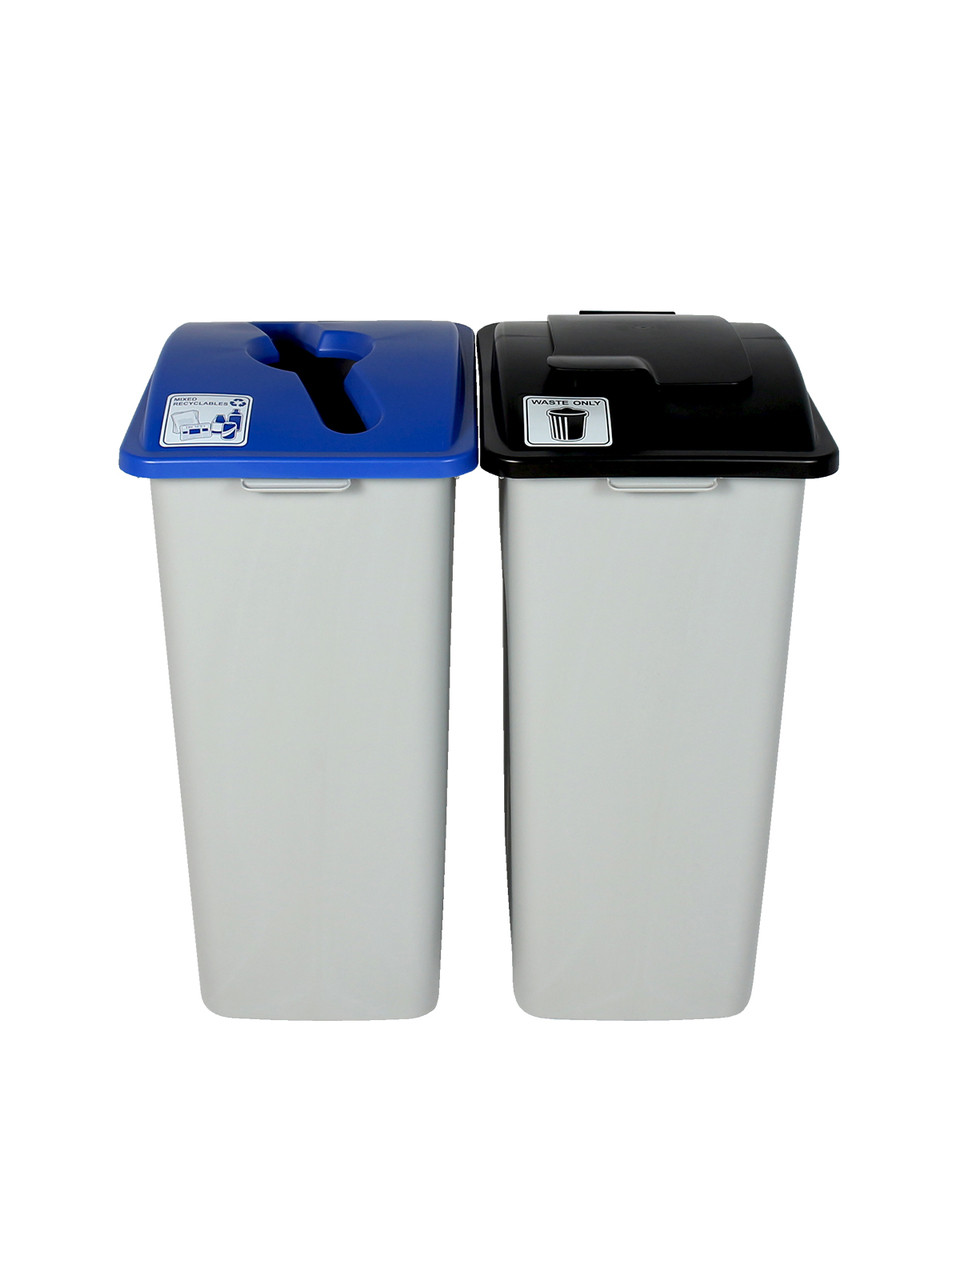 64 Gallon Simple Sort XL Trash Can Recycle Bin Combo 8111023-25 (Mixed, Waste Lift Lid Openings)